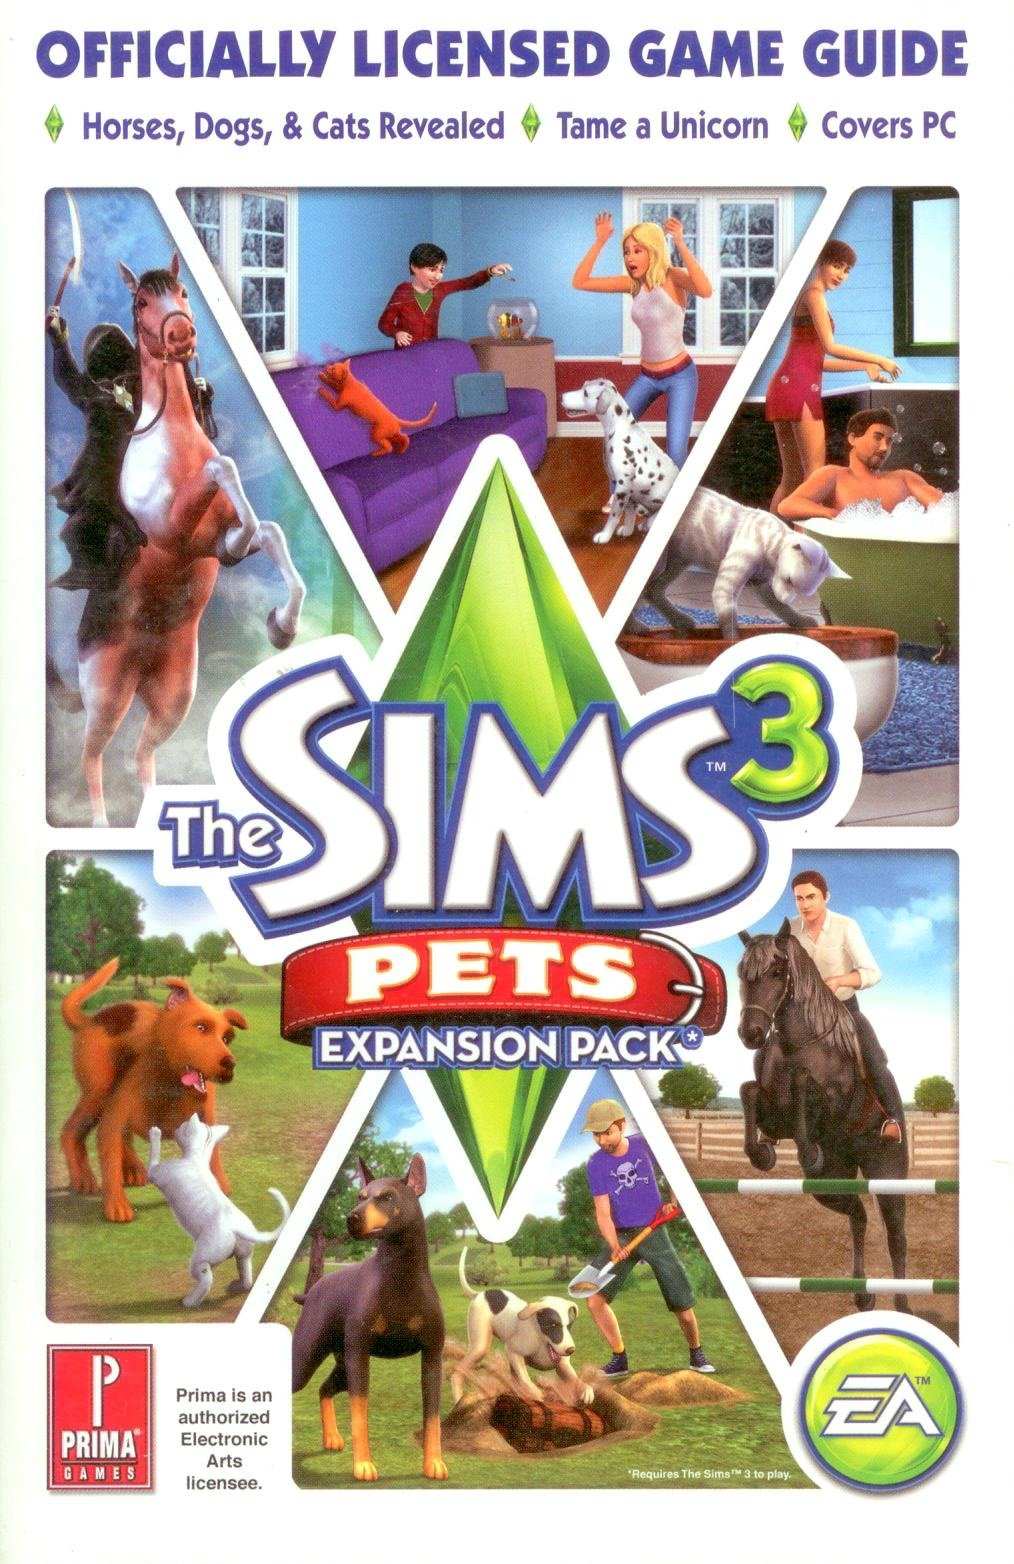 The sims 3 pets: horses guide to care, training, and benefits.